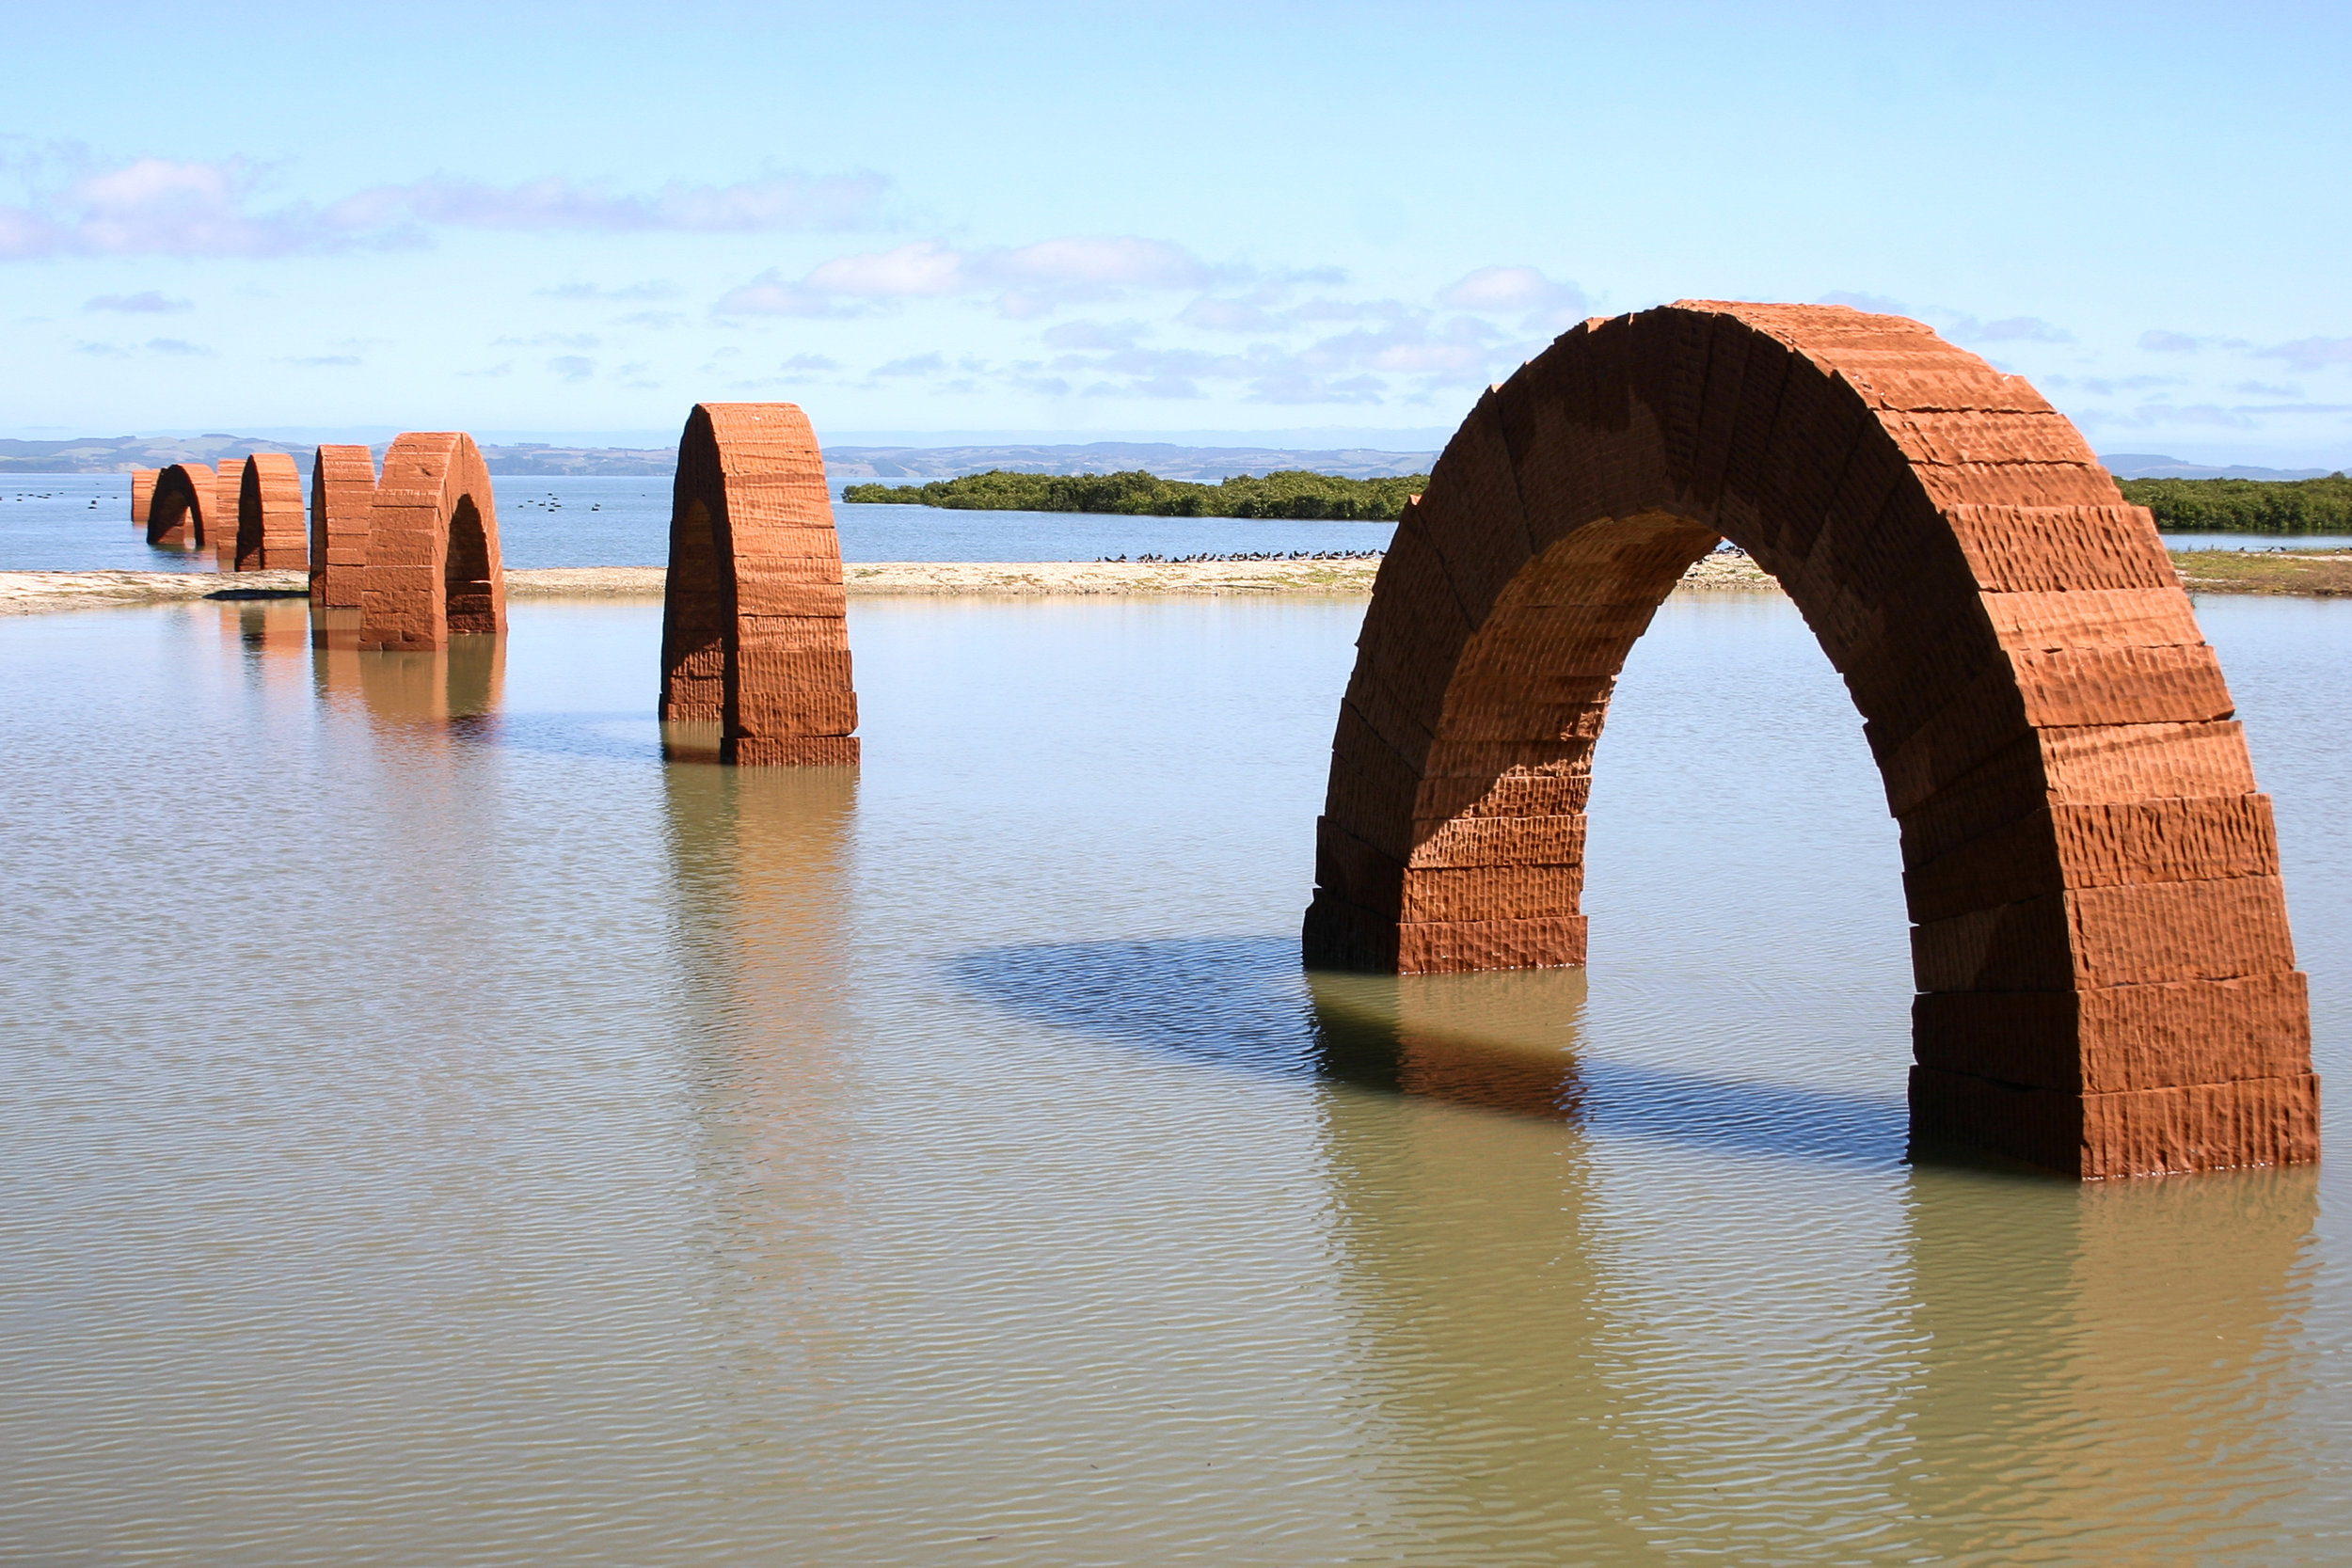 5 Hard, clear light reveals the bones'; visiting the gibbs farm; Patrick hutchings,  kaipara harbour    Andy Goldsworthy,  Arches , 2005, pink Leadhills sandstone blocks stacked into 11 freestanding arches (each 7m long); image courtesy Gibbs Farm,   Kaipara Harbour